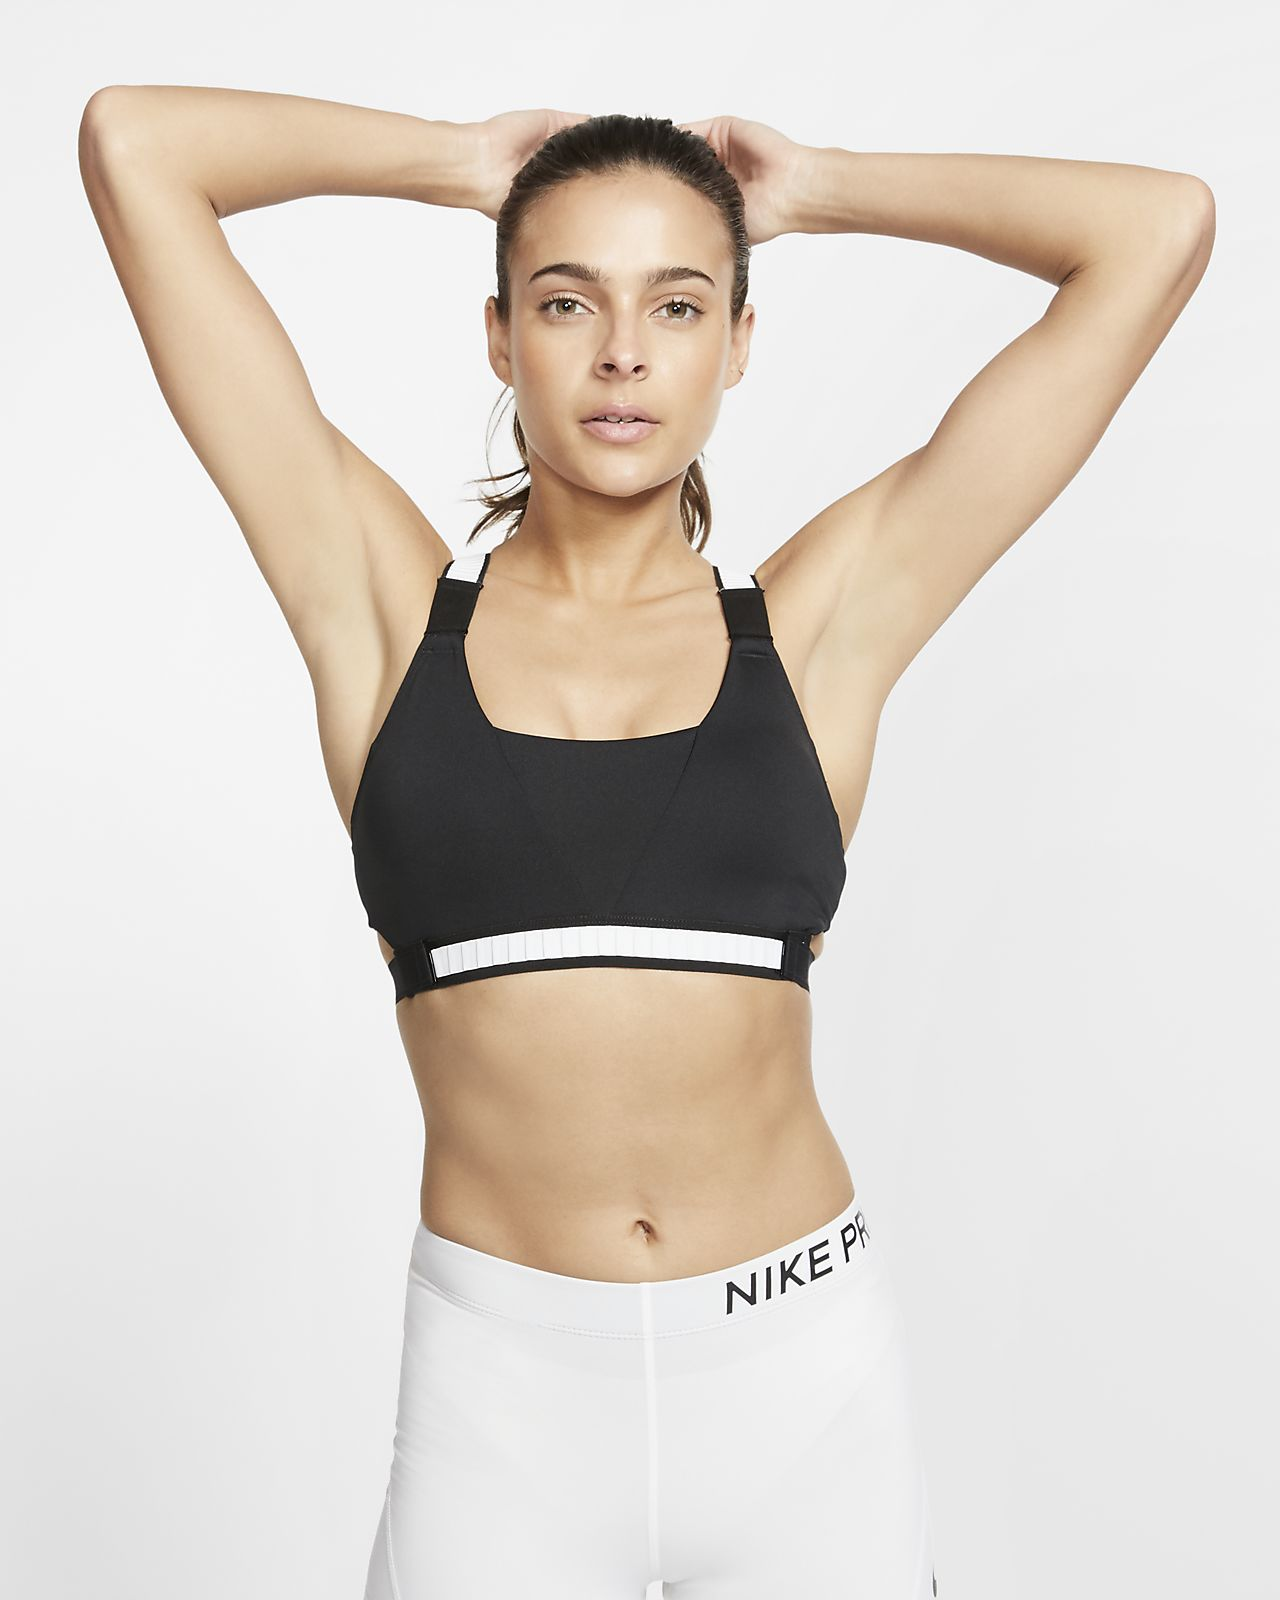 Nike Infinity Women's Medium-Support Sports Bra